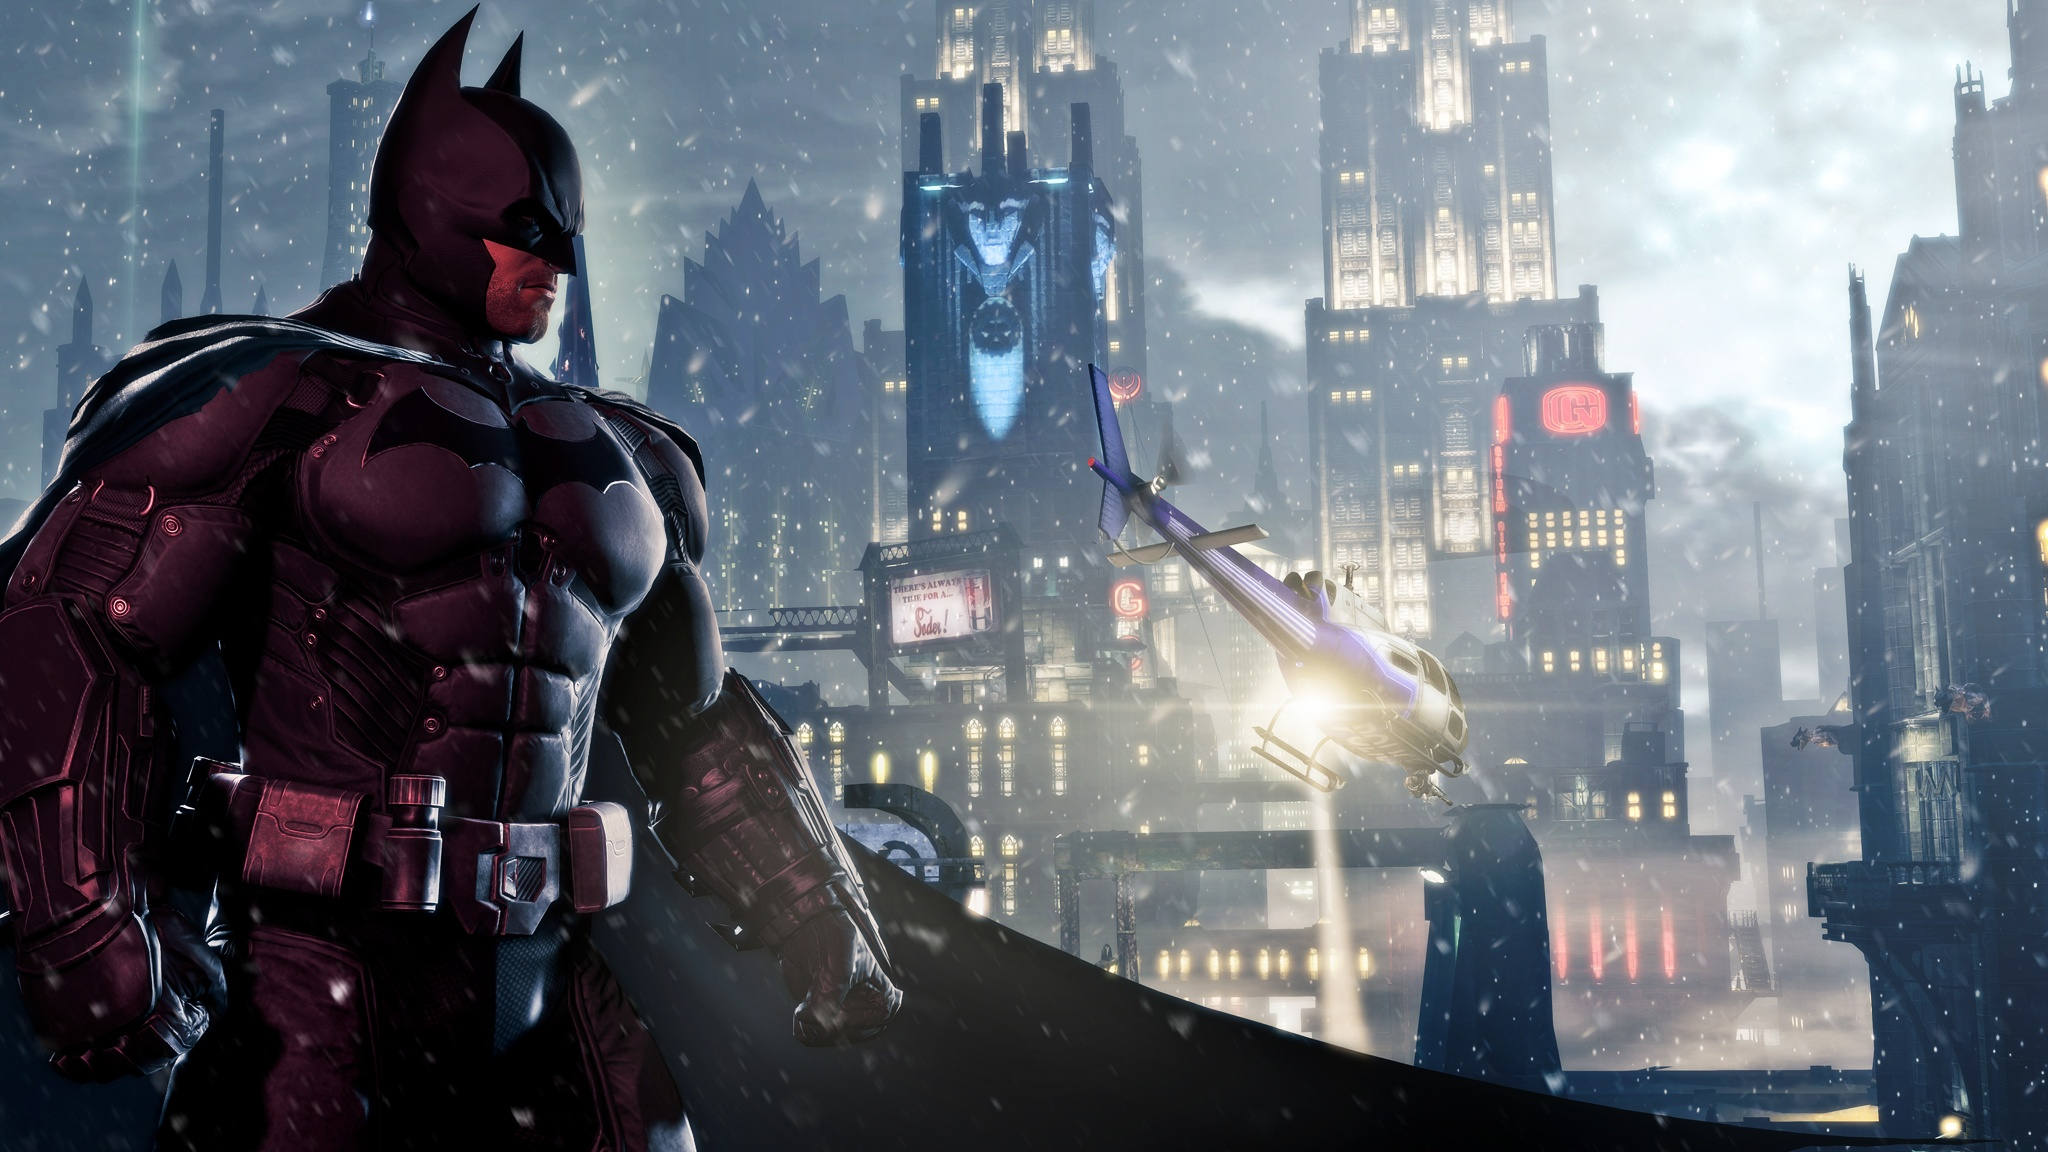 Llega el trailer debut de Batman: Arkham Origins [Vídeo]